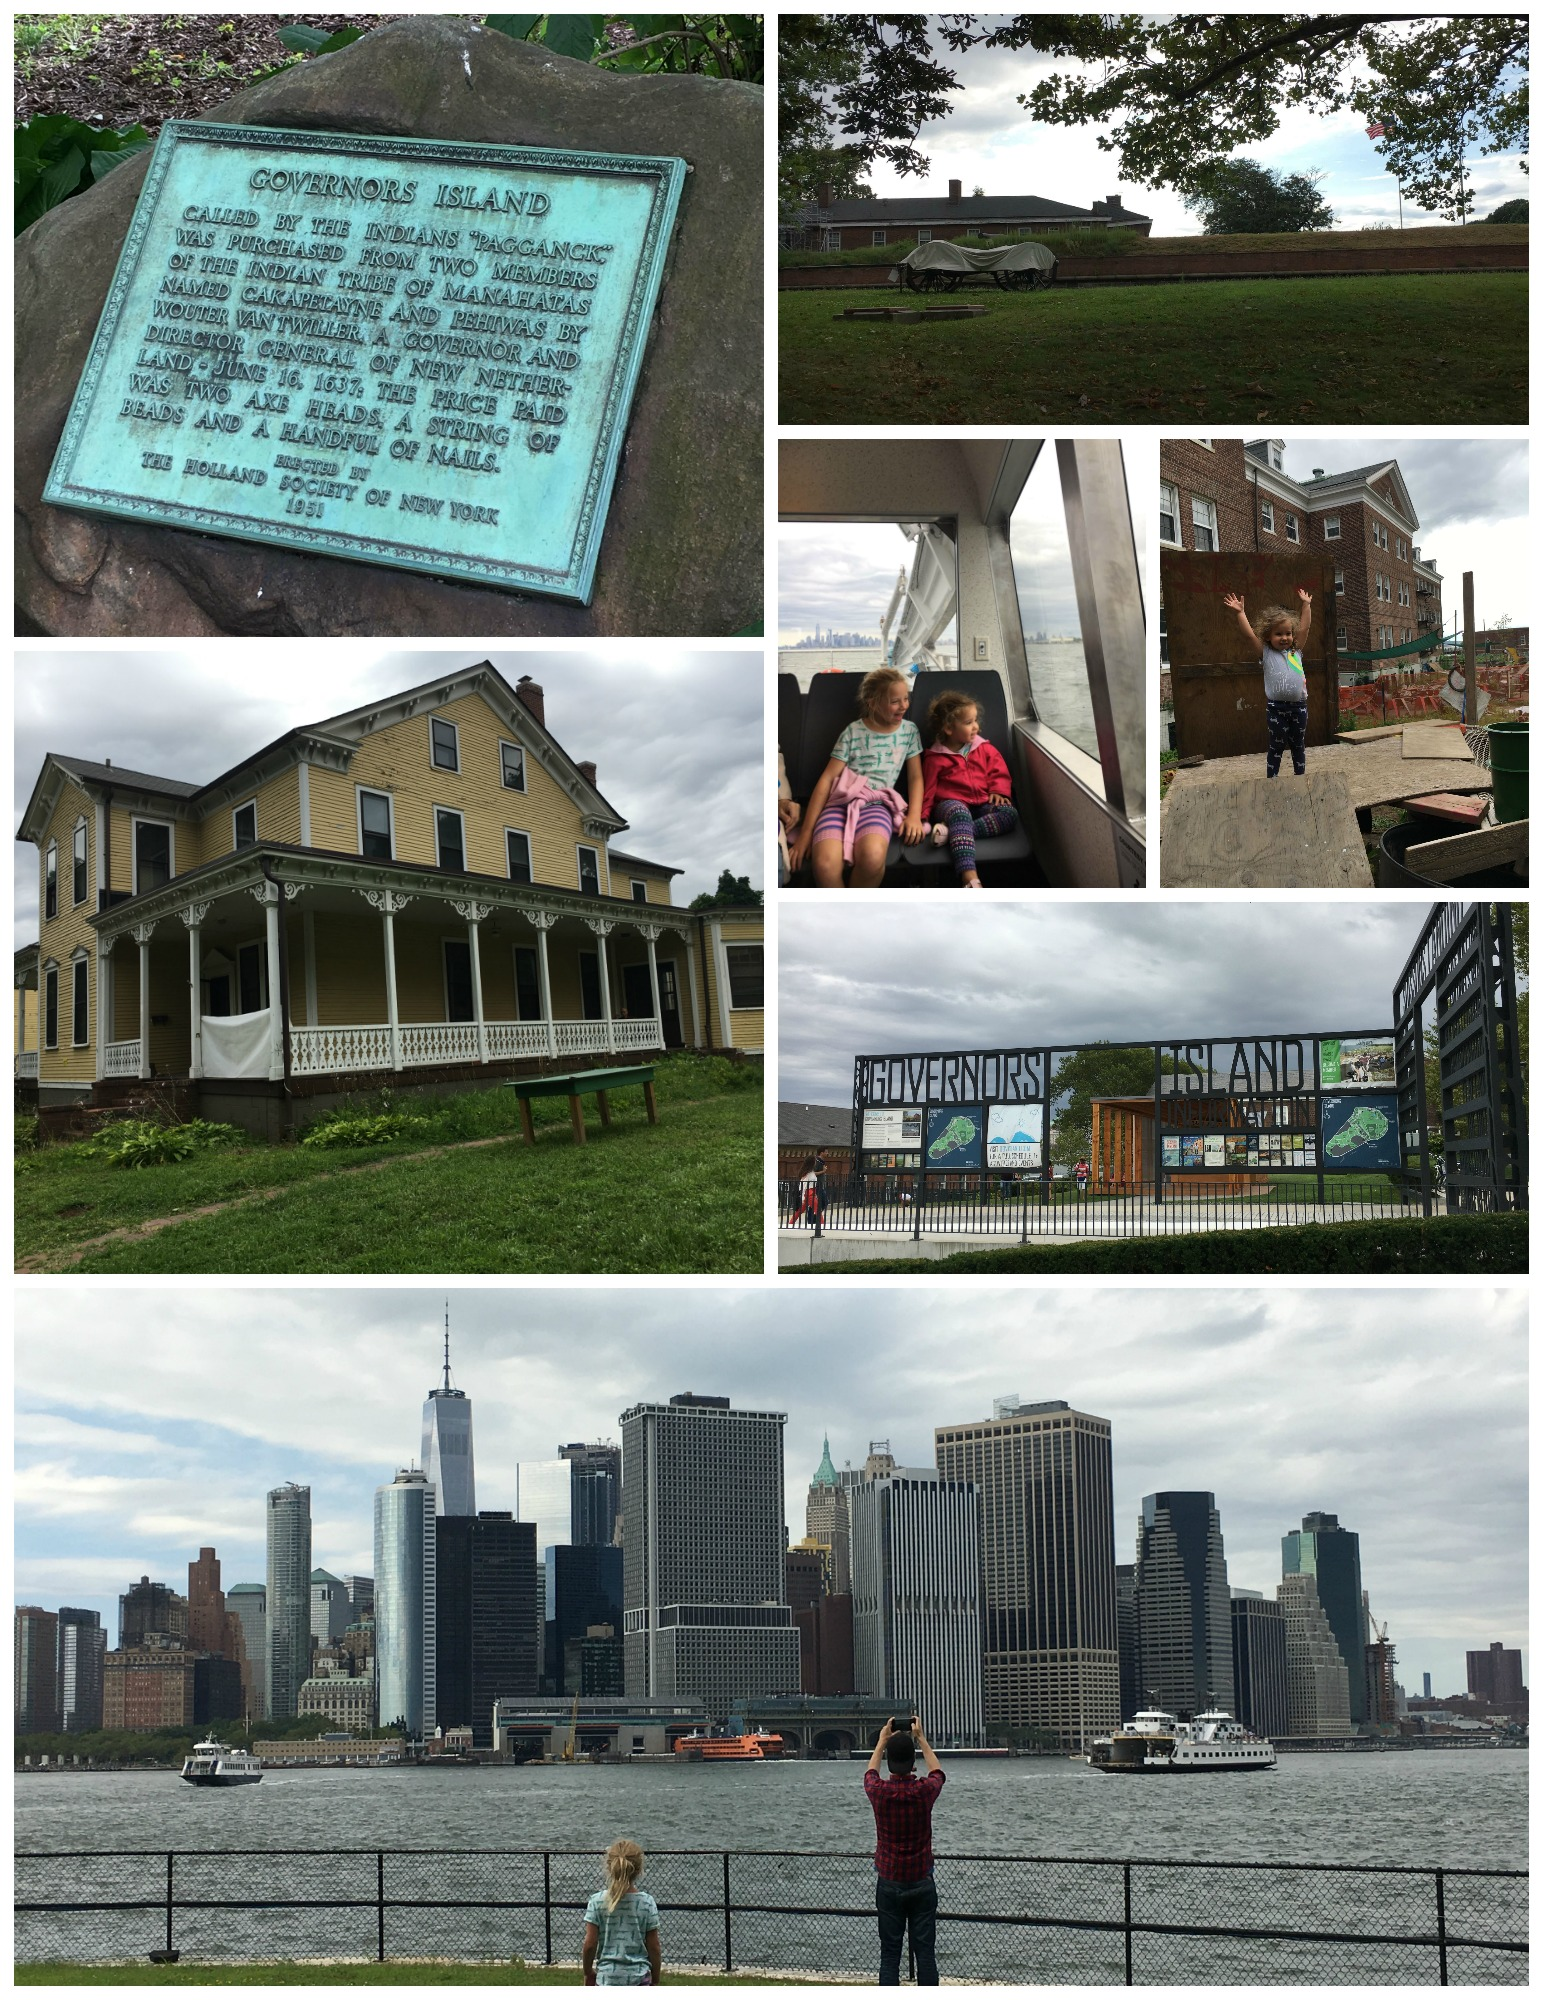 trip to governors island in nyc